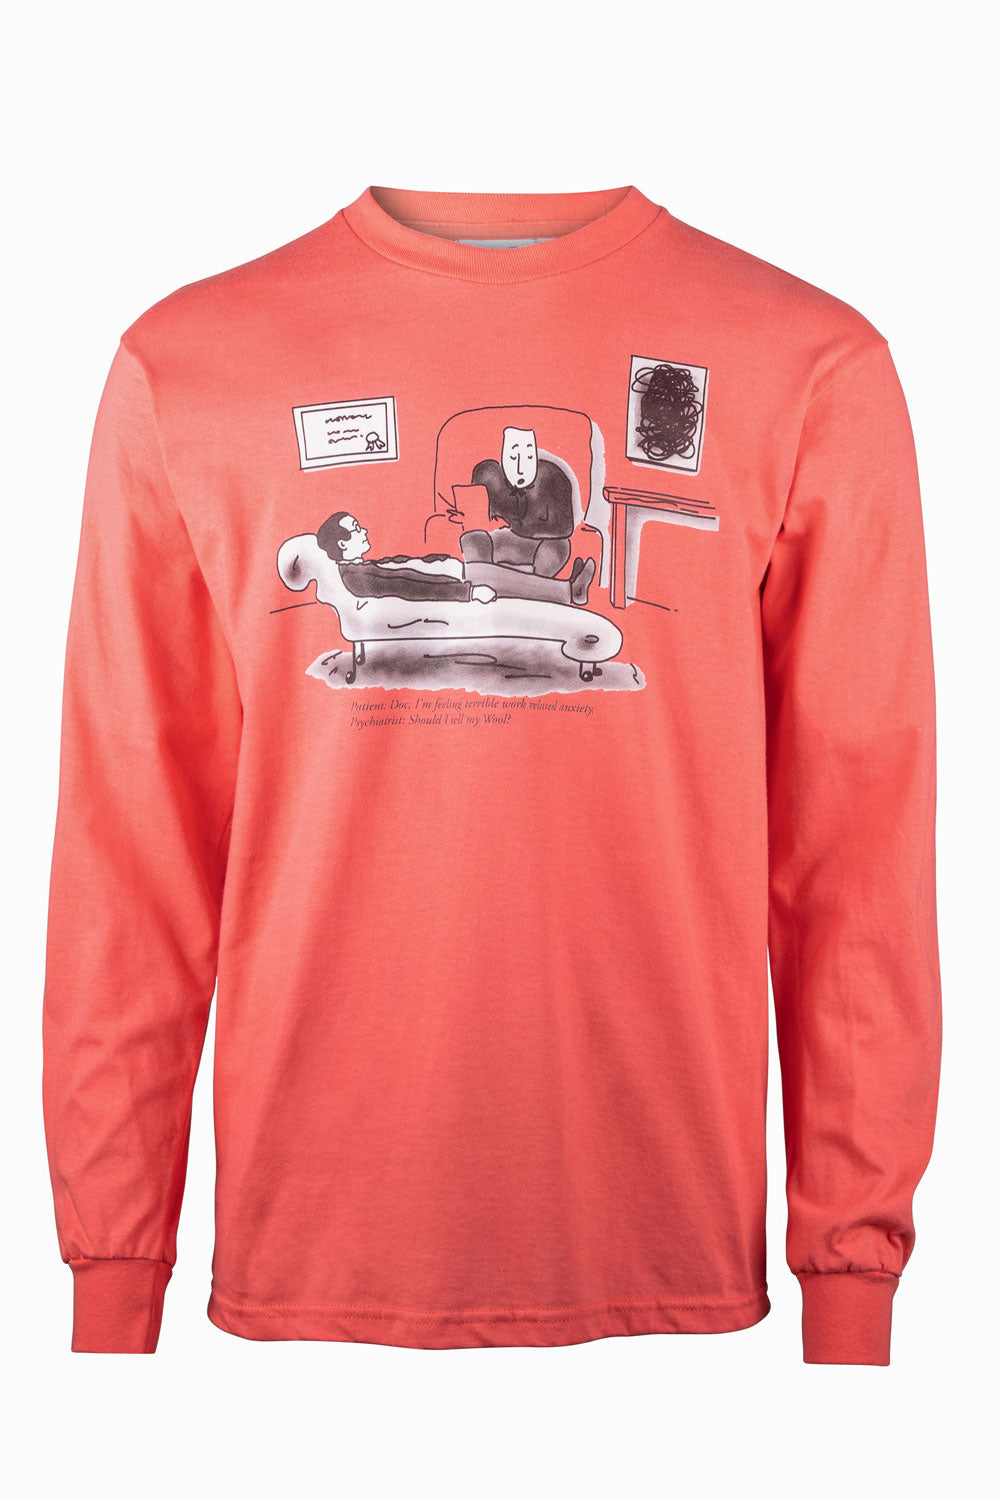 Kenny Schachter 'Shall I Sell' Long Sleeve Top